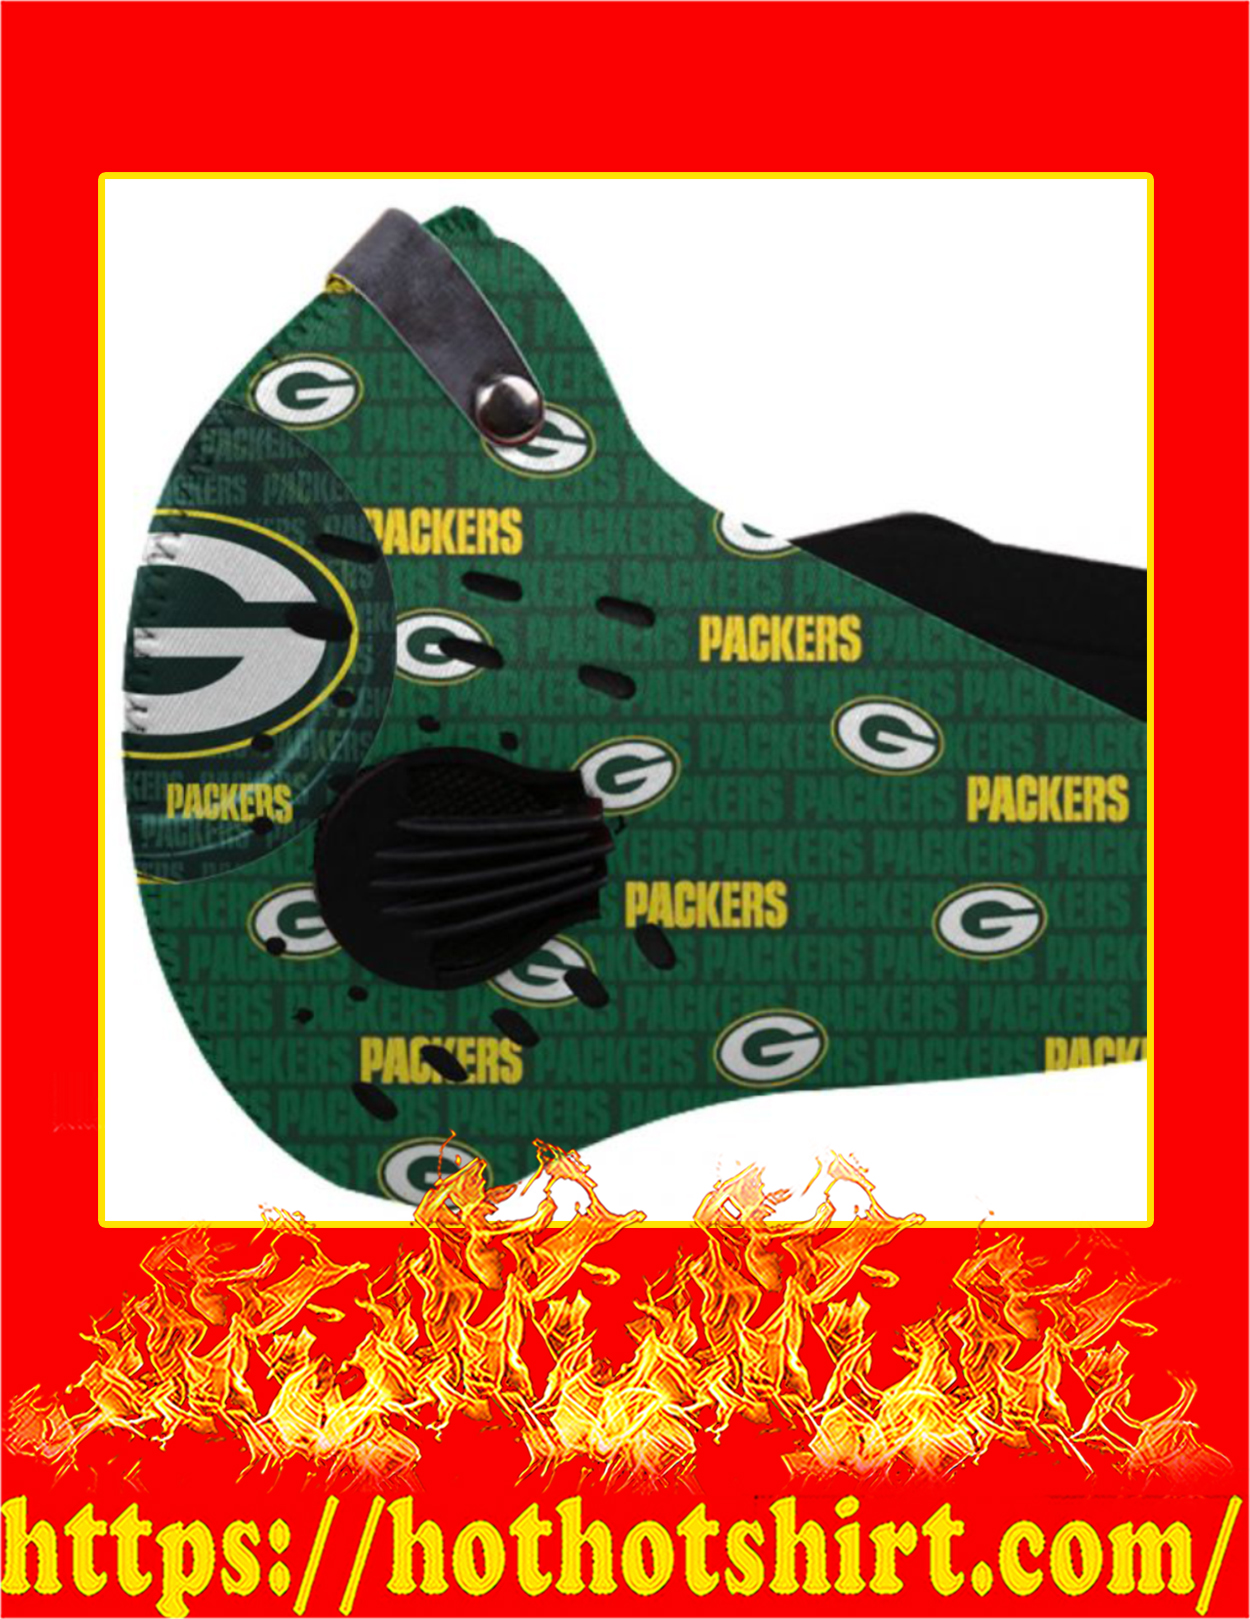 NFL Packers filter face mask - Pic 1